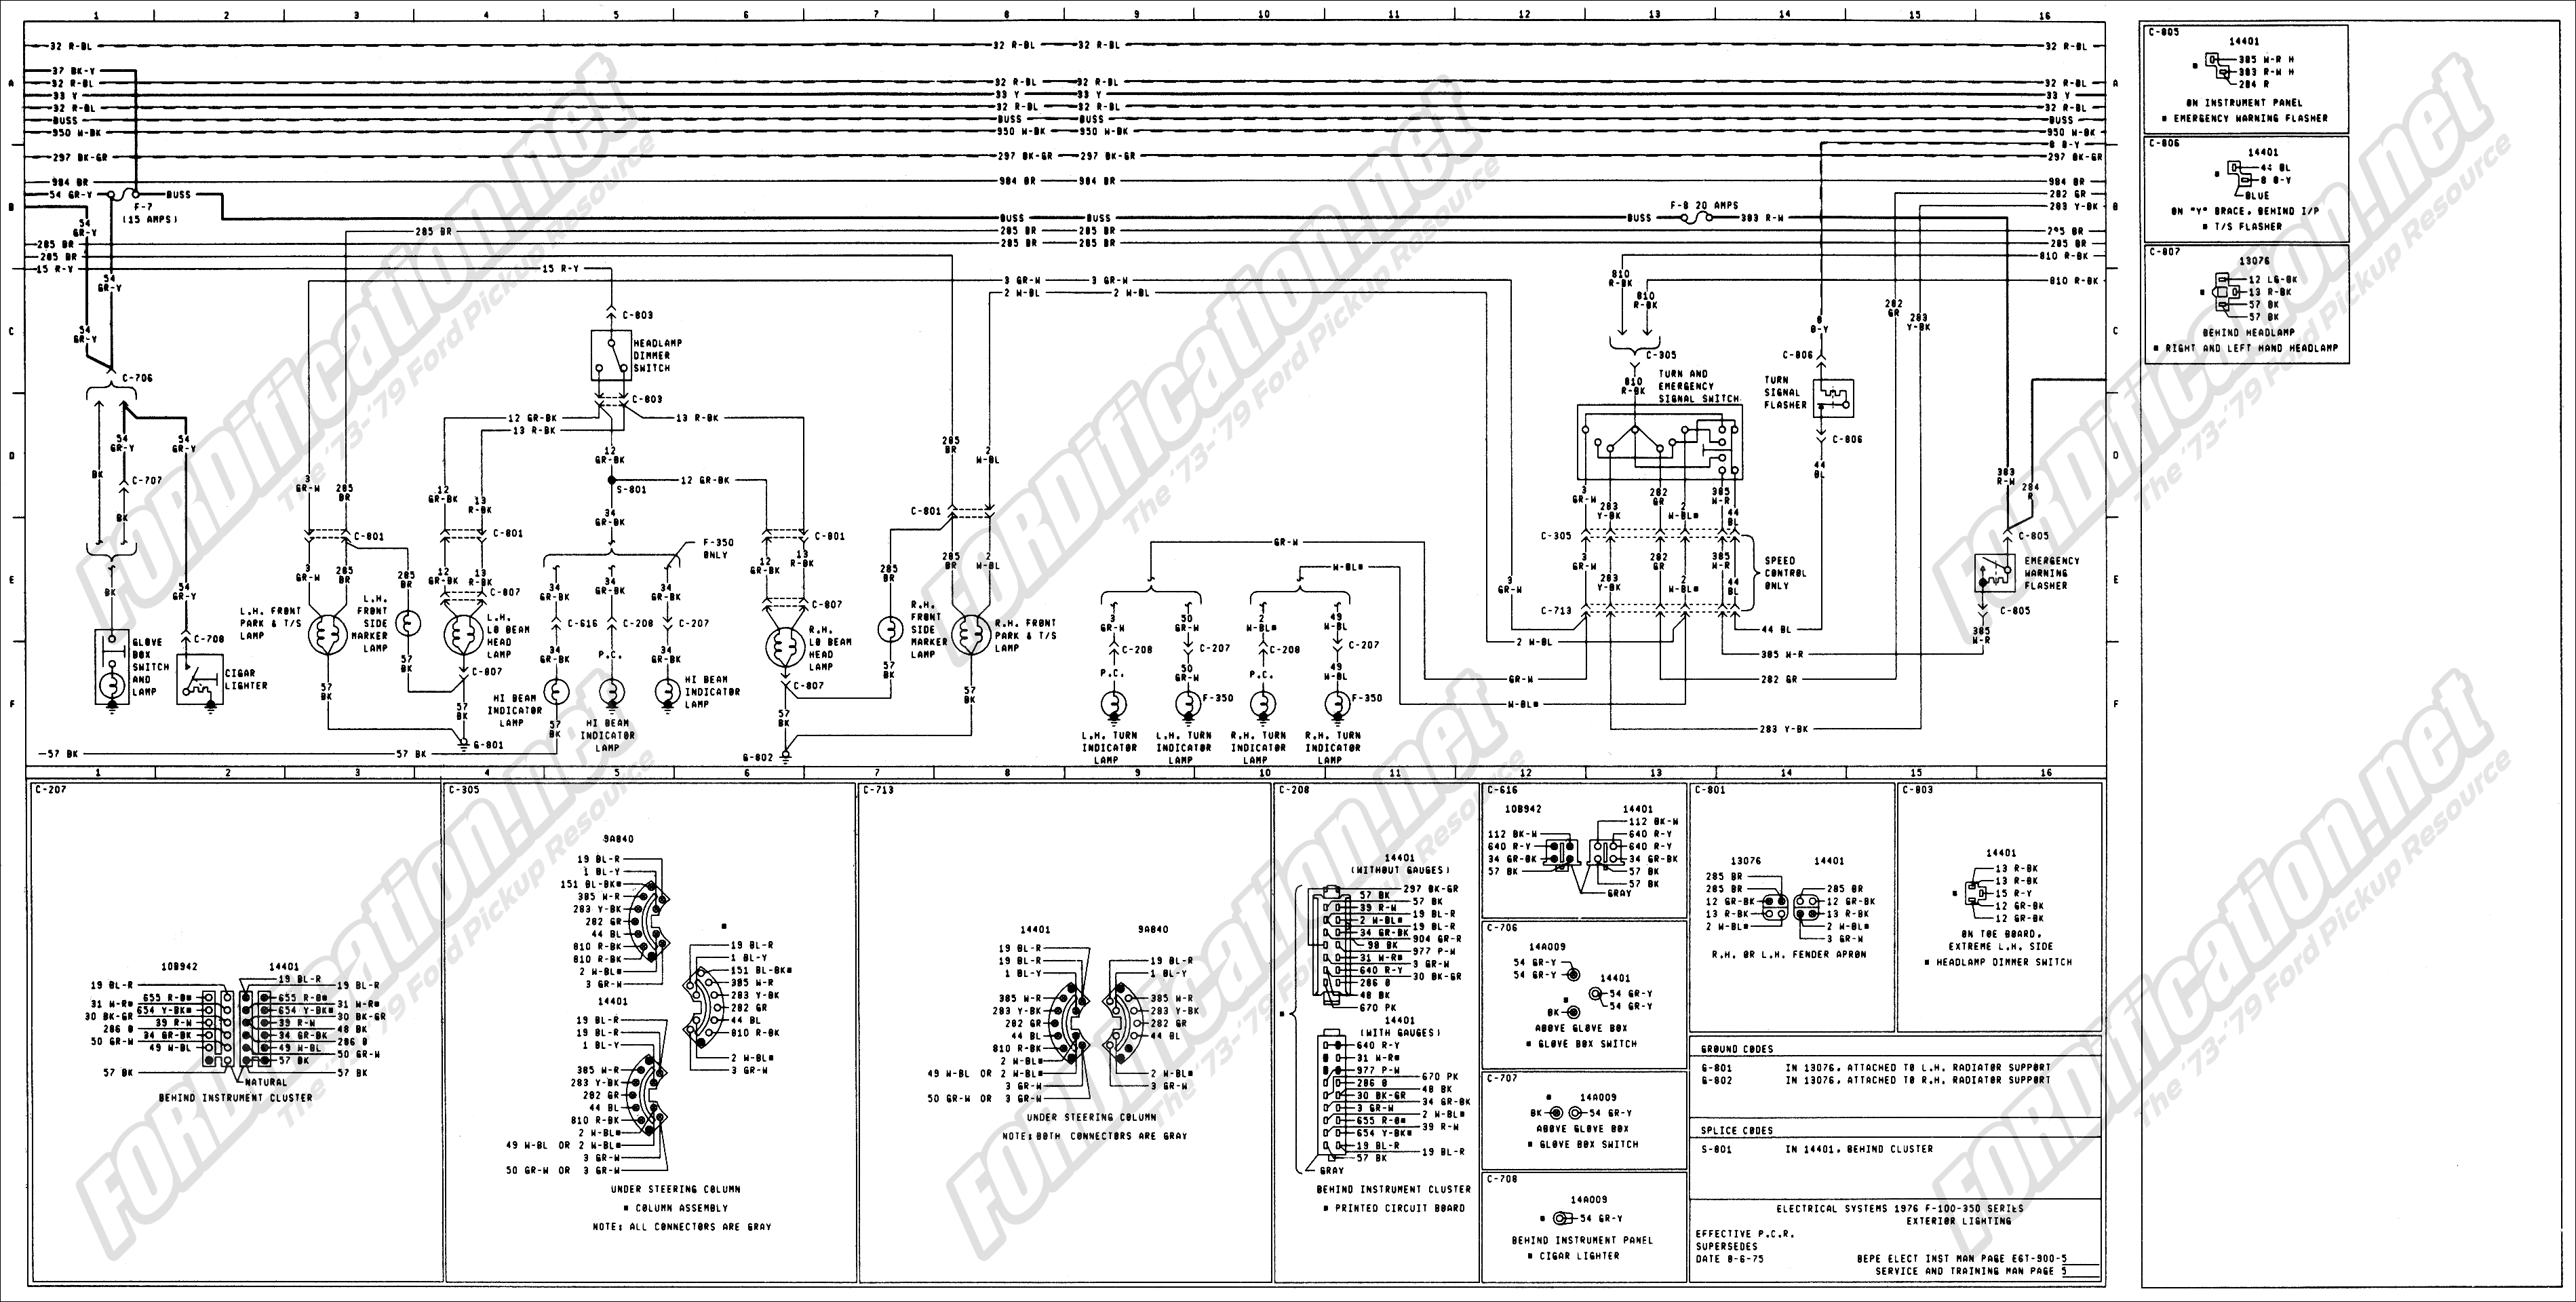 wiring_76master_5of9 1973 1979 ford truck wiring diagrams & schematics fordification net 1966 ford truck wiring harness at creativeand.co